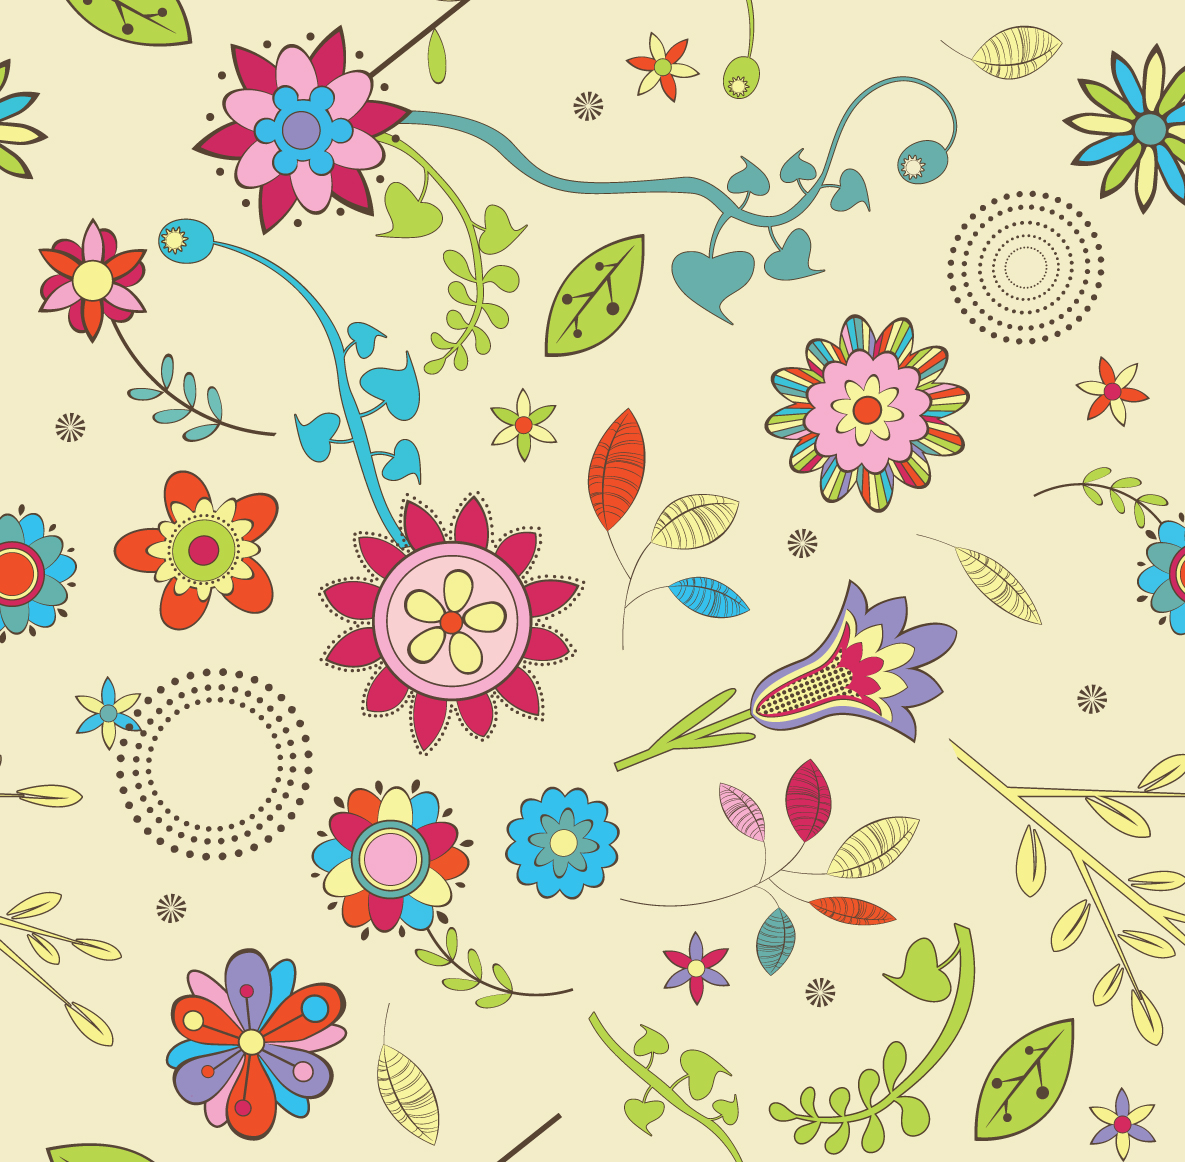 Free vector patterns and backgrounds | eps-ai blogspot com